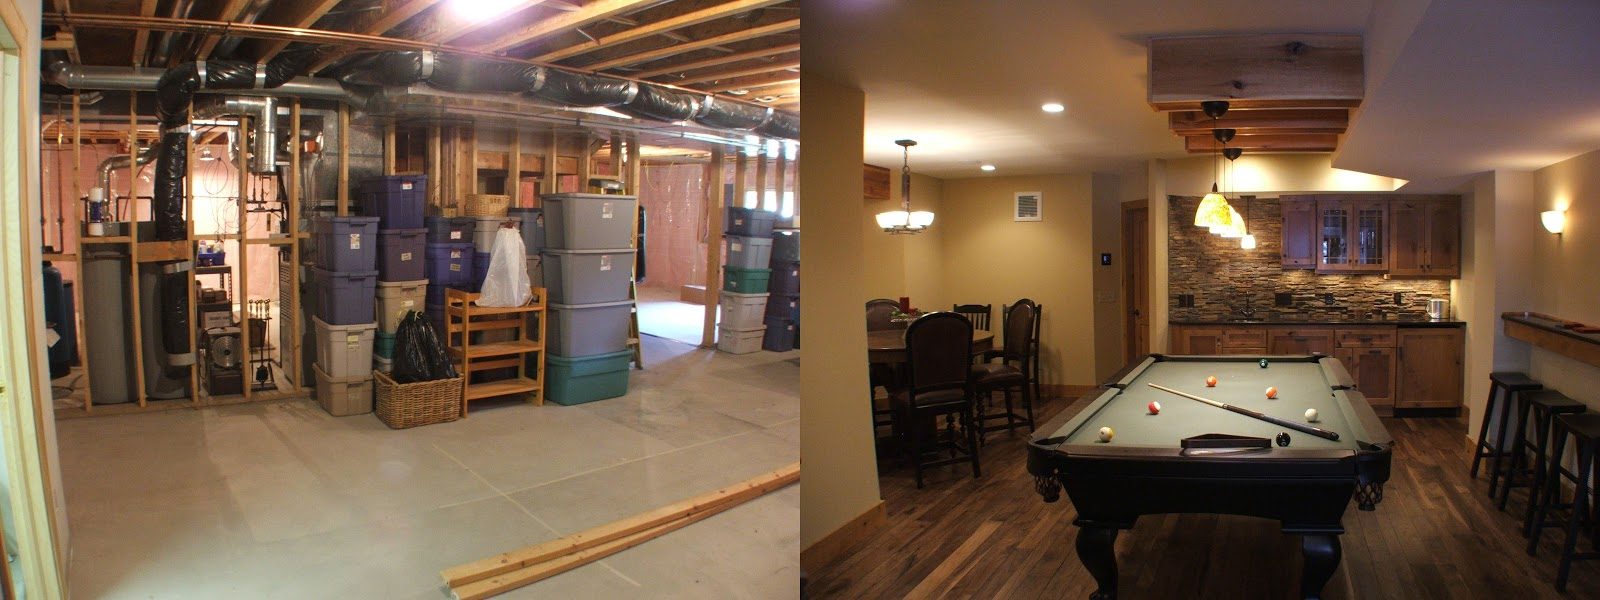 10 inspirational basement remodels before and after pictures rh treasuredspacesinc com Small Basement Makeovers basement remodeling ideas photos before and after